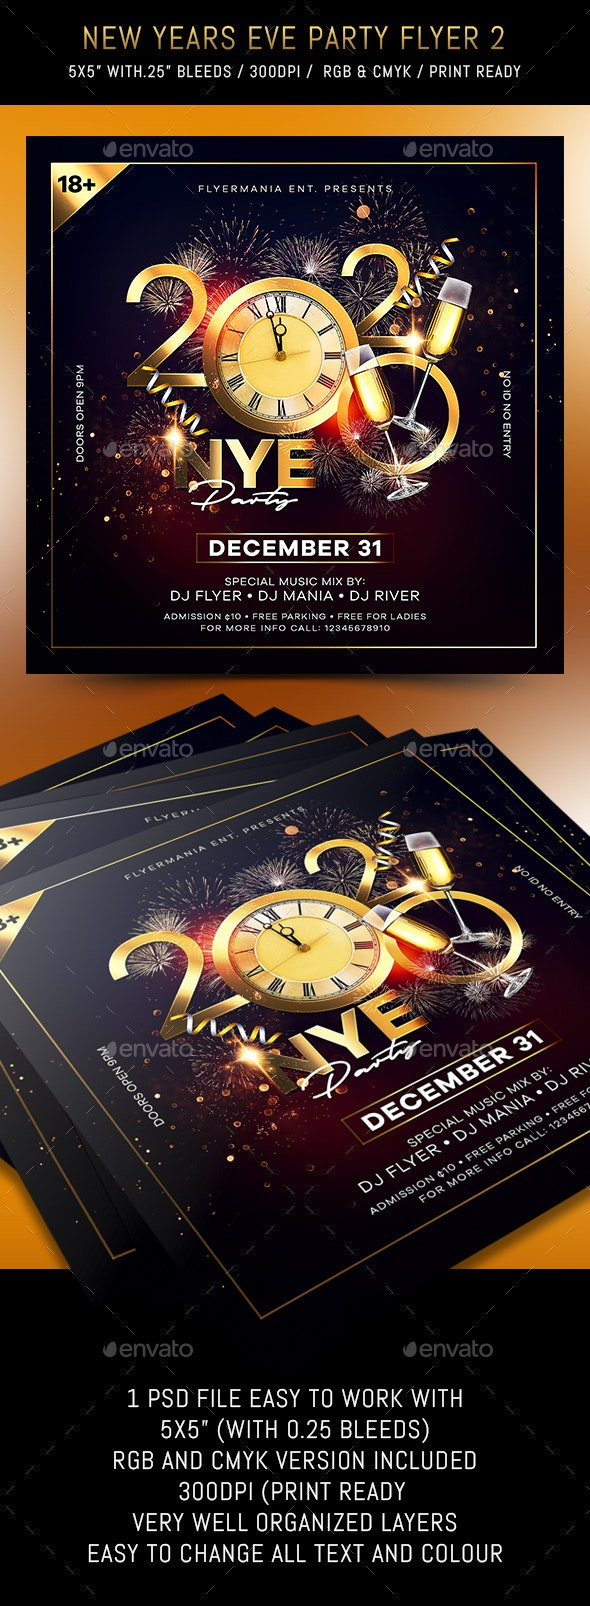 New Years Eve Party Flyer 2 - Flyers Print Templates